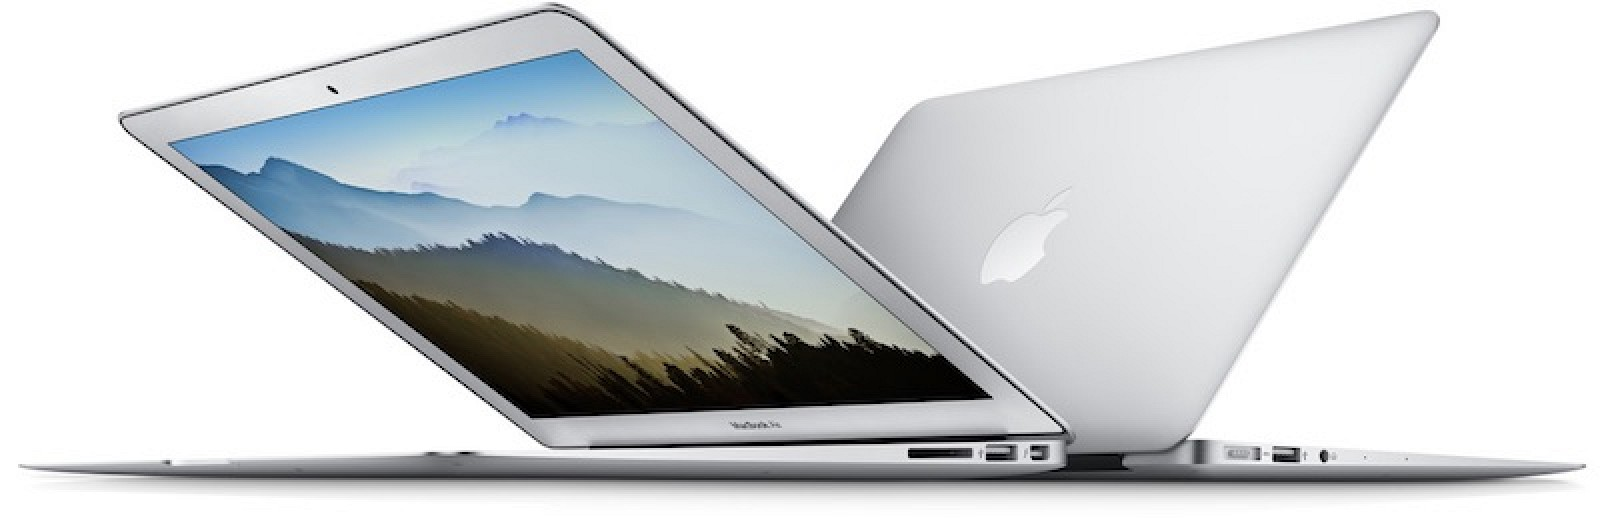 The Optional 1.8GHz Core i7 - The 2011 MacBook Air (11 & 13-inch ...